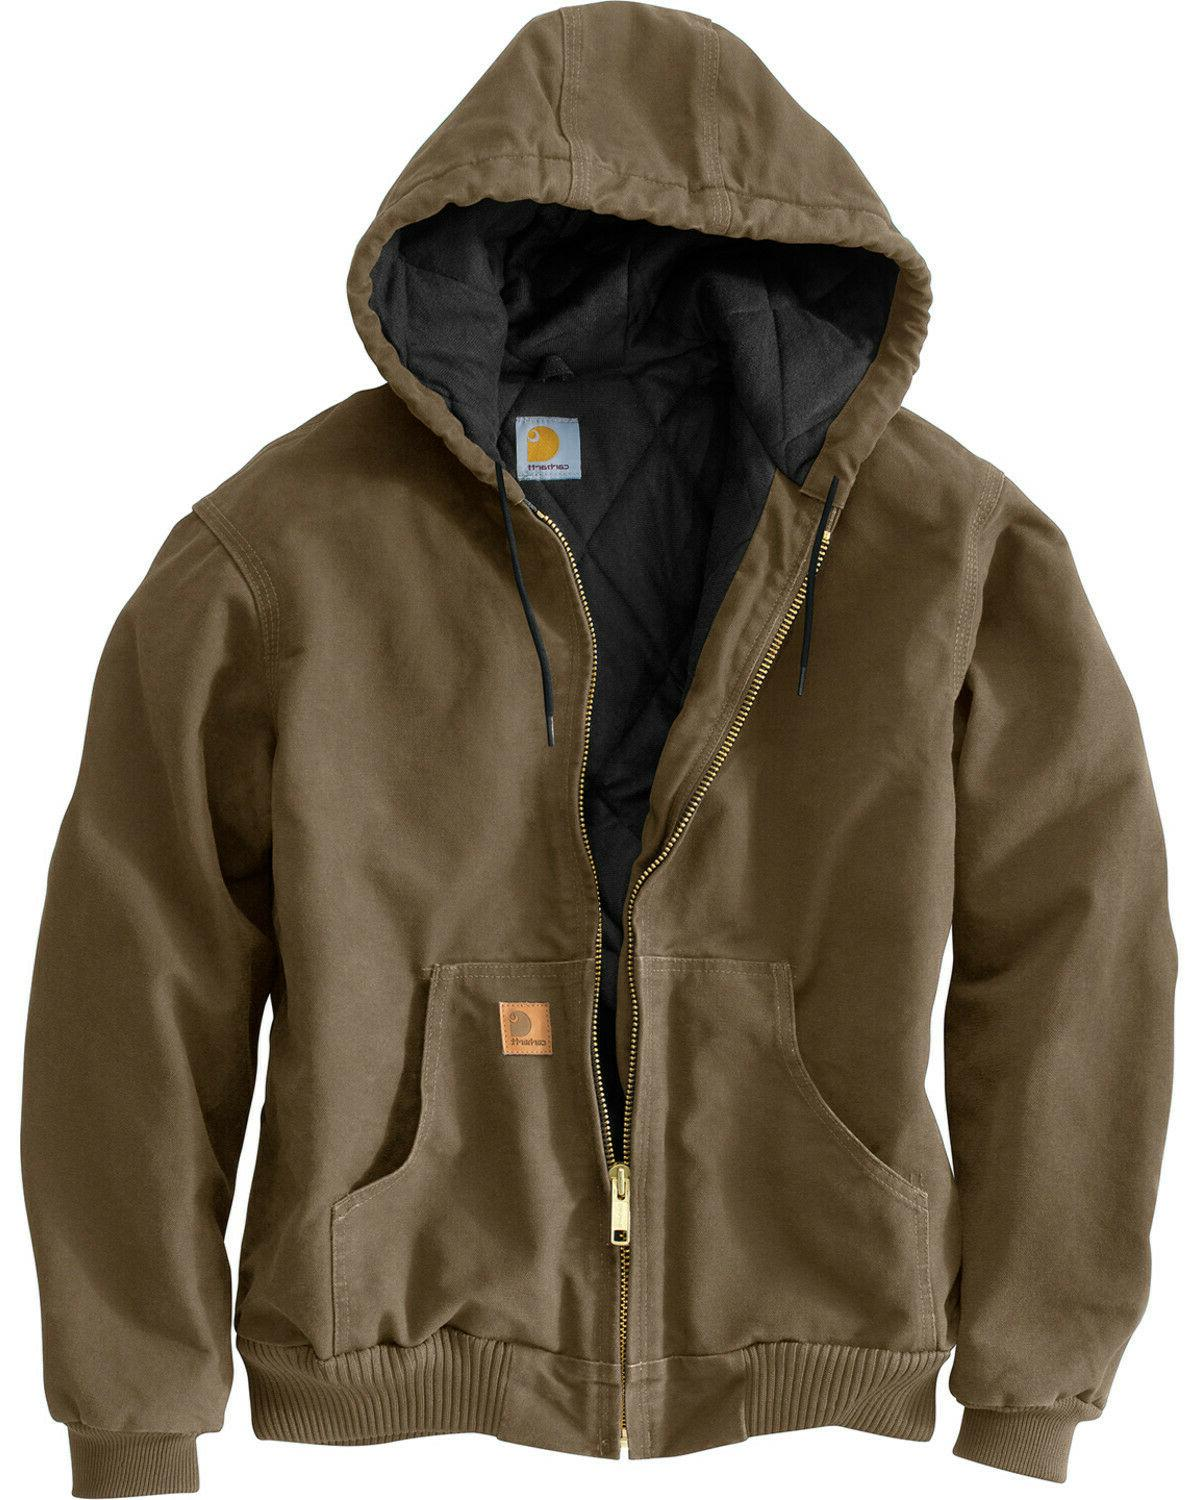 new with tags mens sandstone winter coat